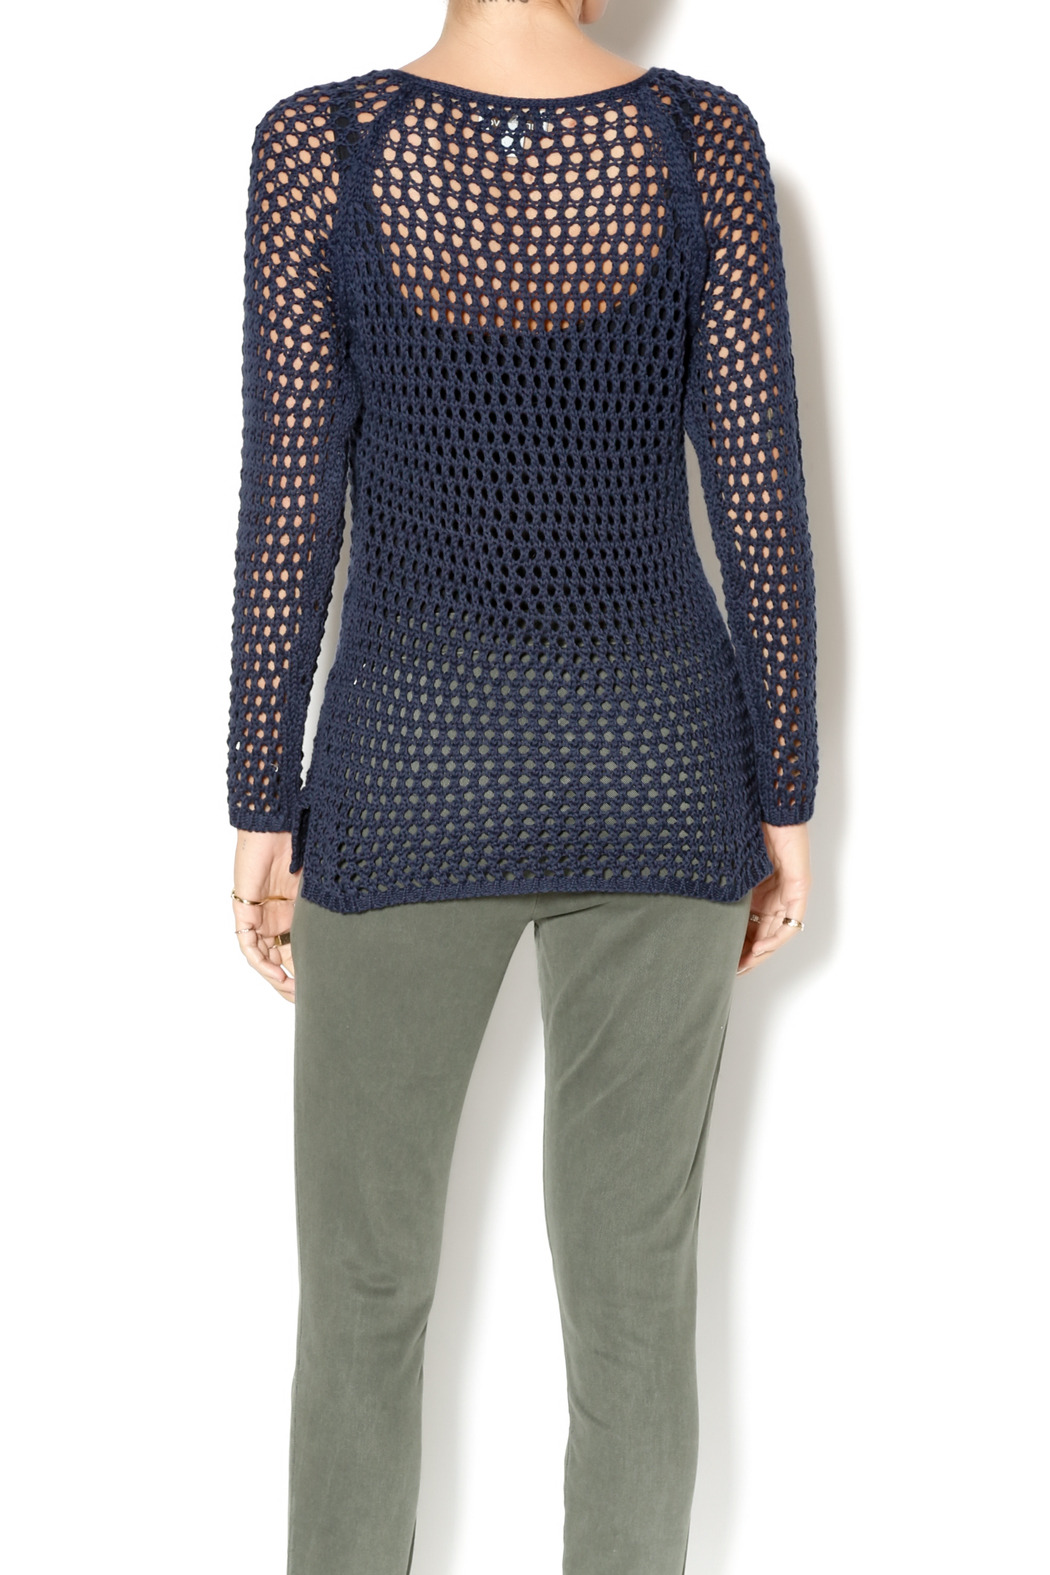 Wind River Navy Open Weave Sweater from New York by Ashlee's Place ...